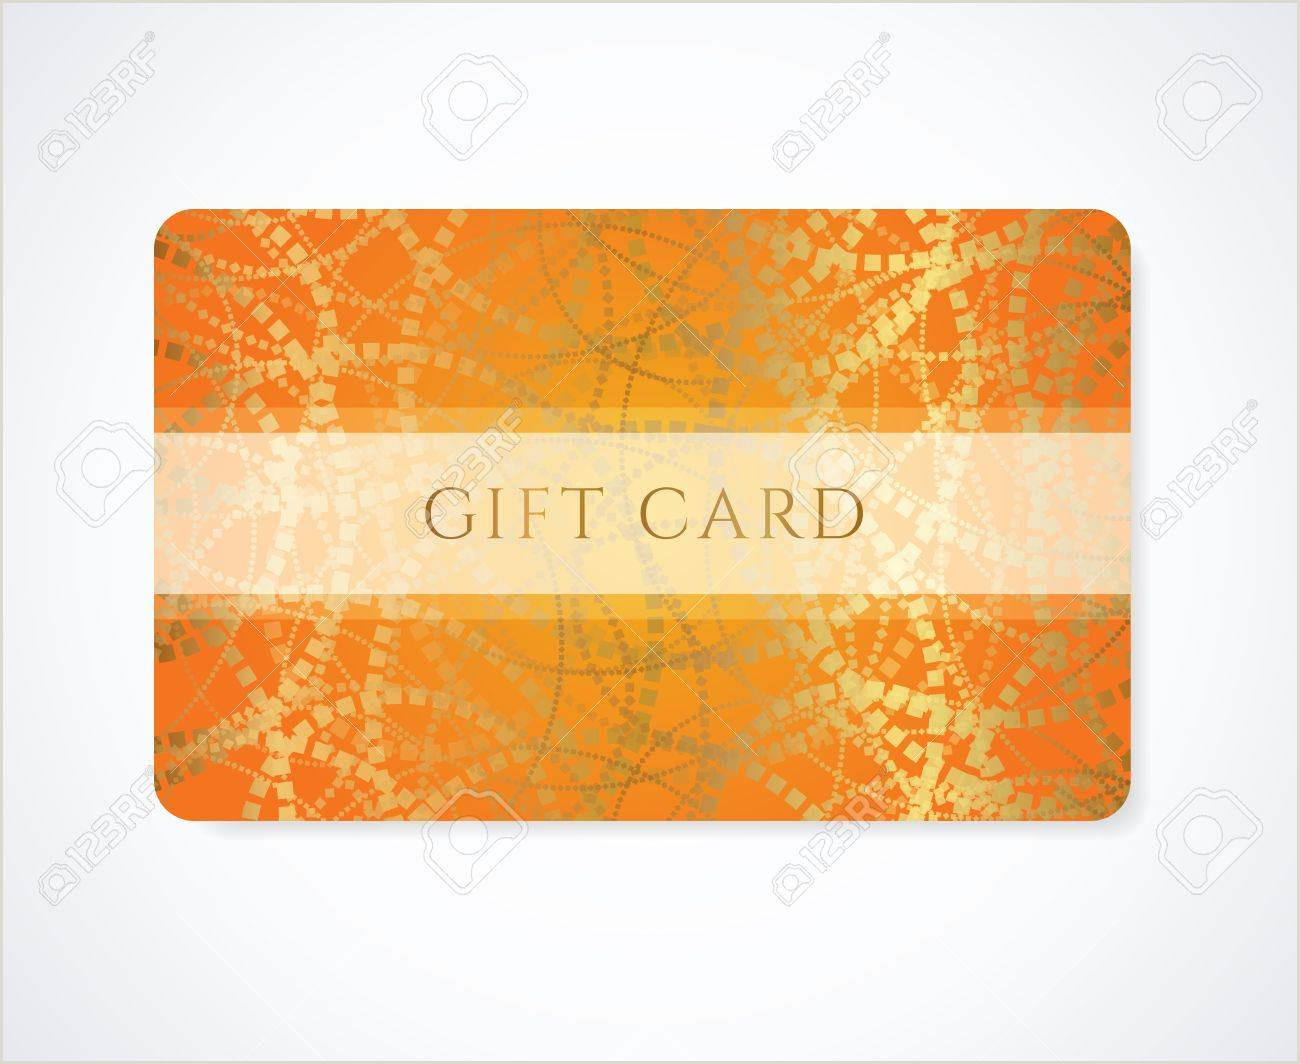 Complimentary Cards Designs Bright Orange Gift Card Business Card Discount Card Template